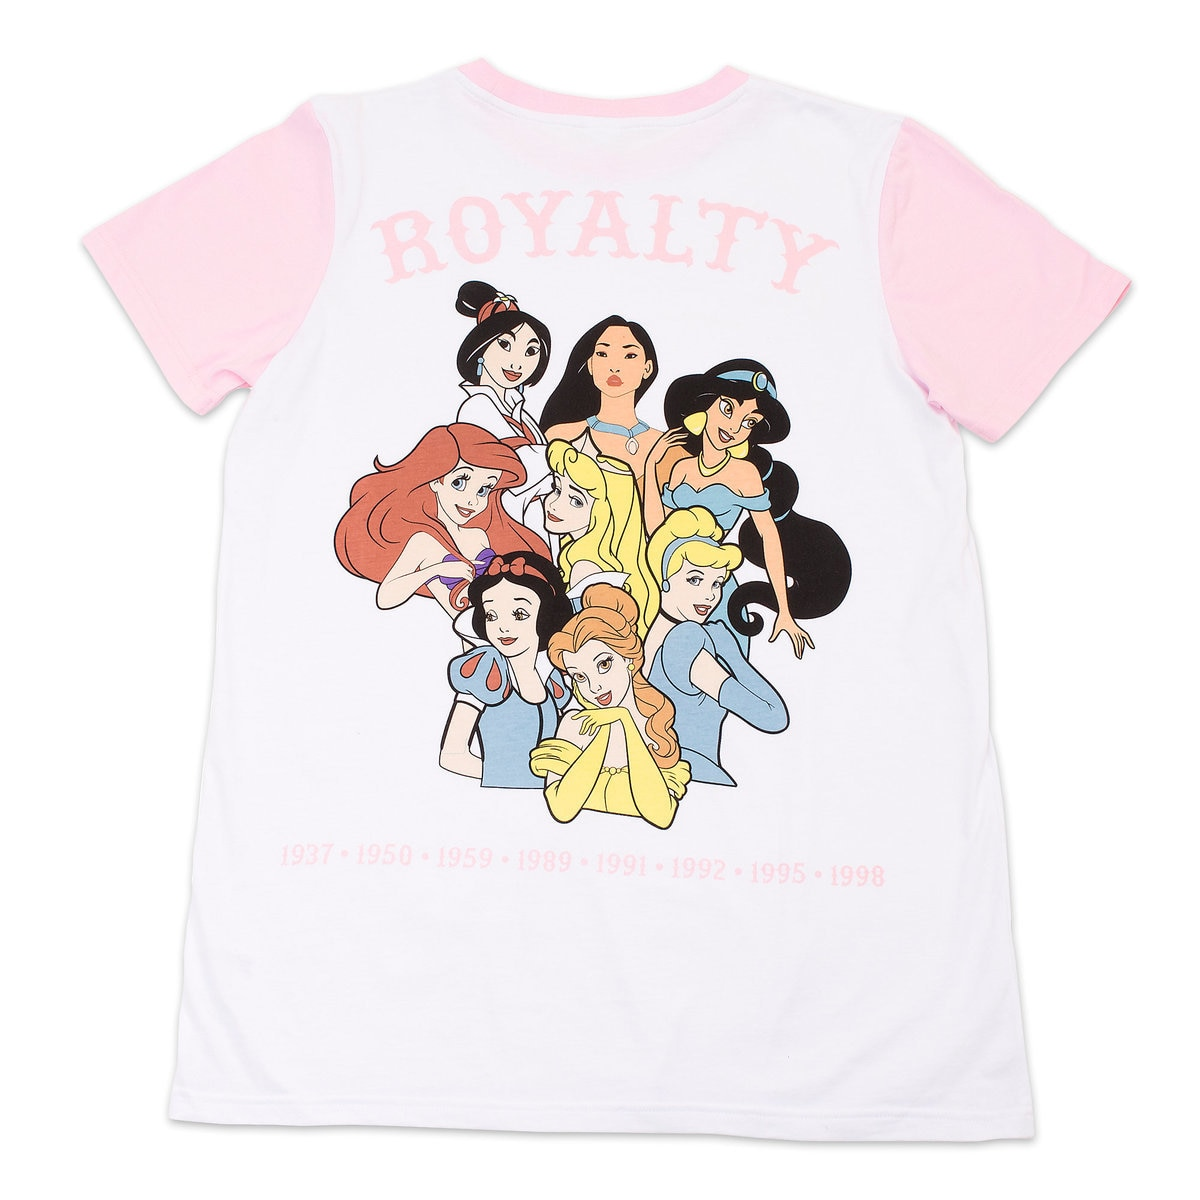 21b883e4 Product Image of Disney Princess T-Shirt for Adults by Cakeworthy # 1